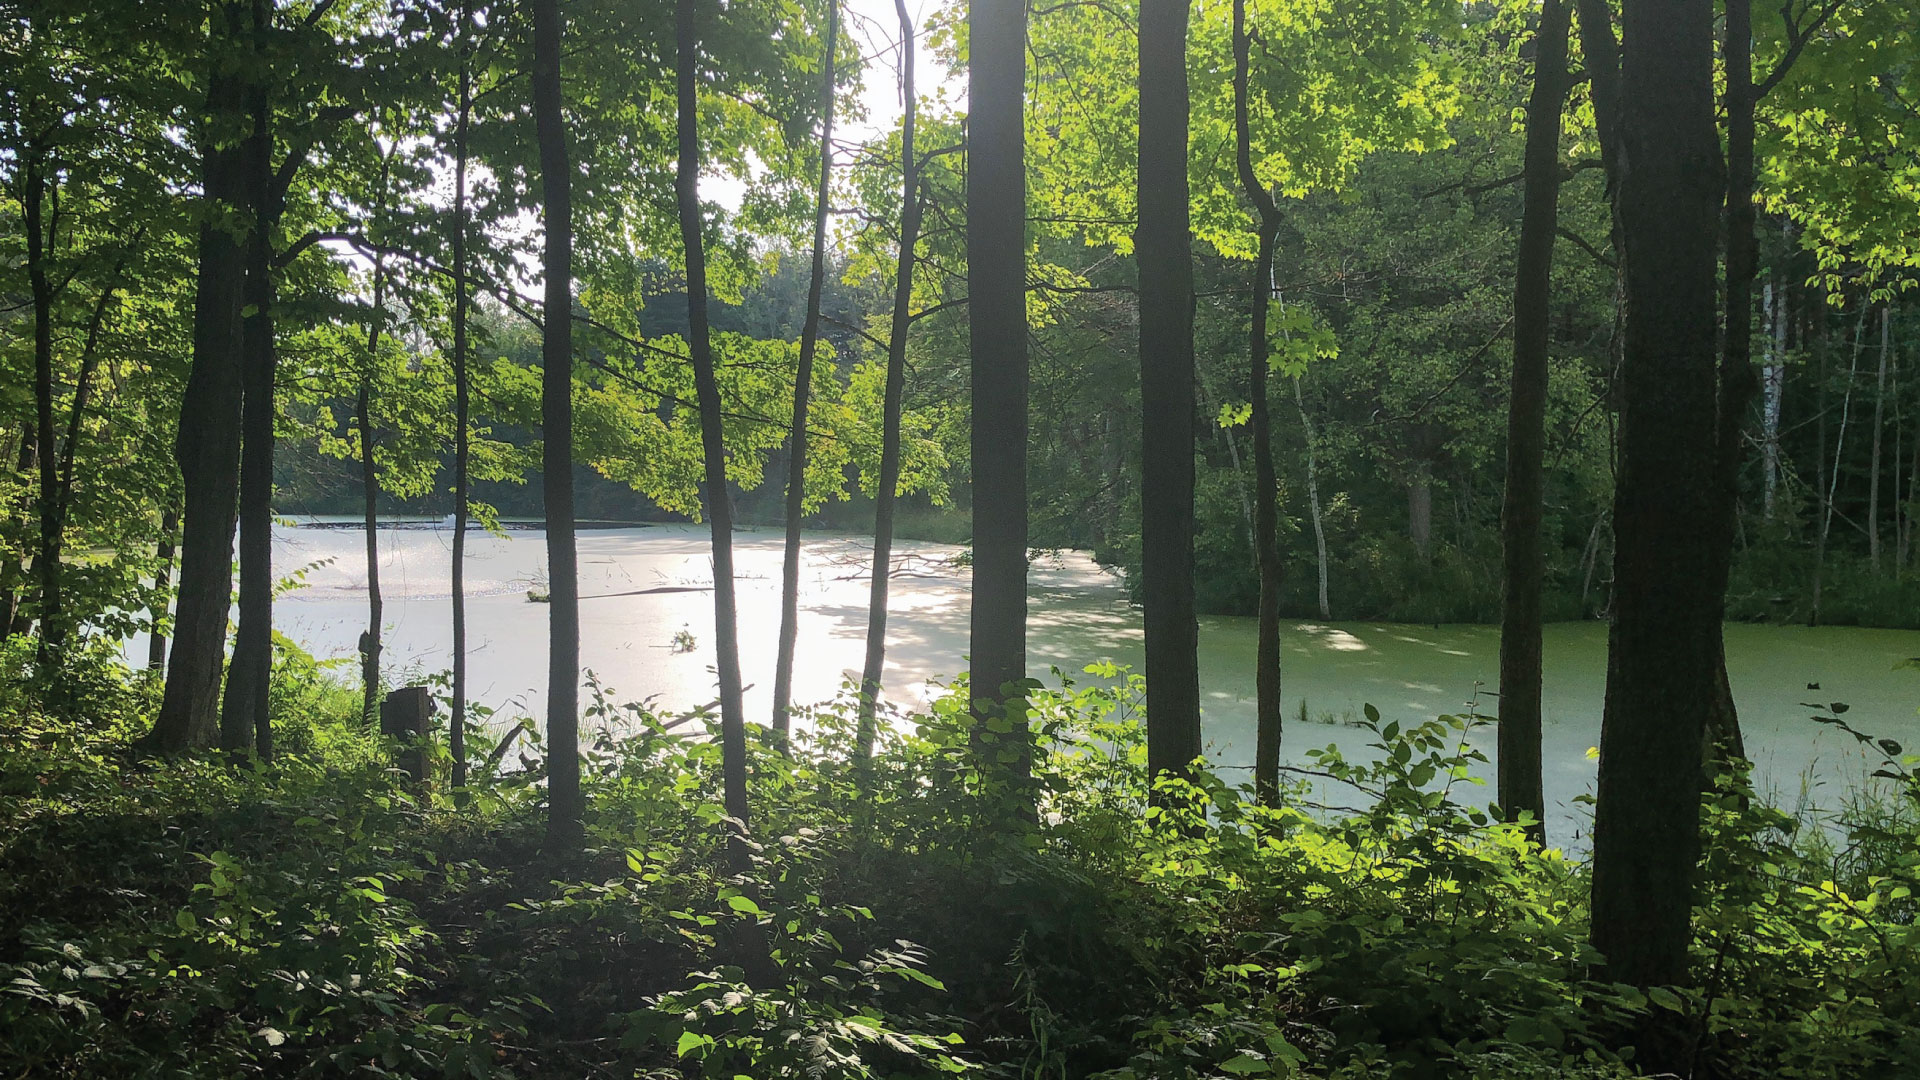 Pond in a forest on the Scandinave Spa Blue Mountain property.